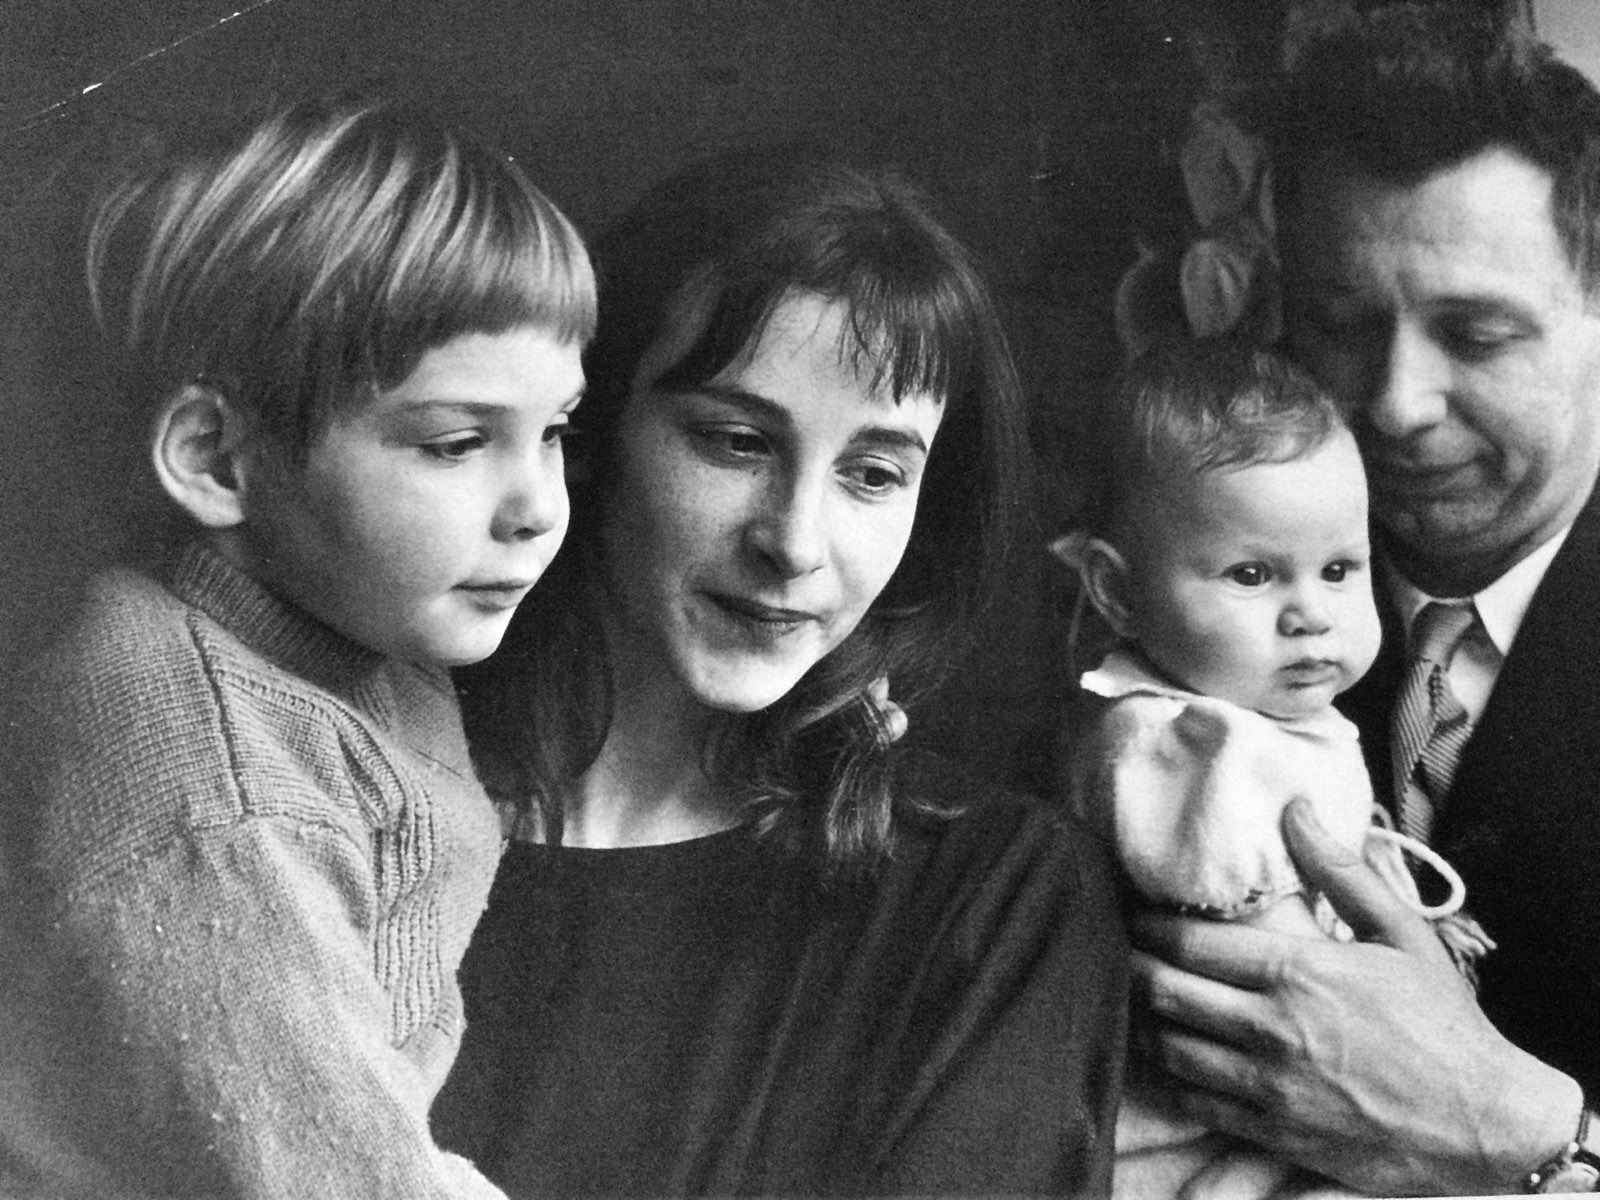 Susan Taubes and her family